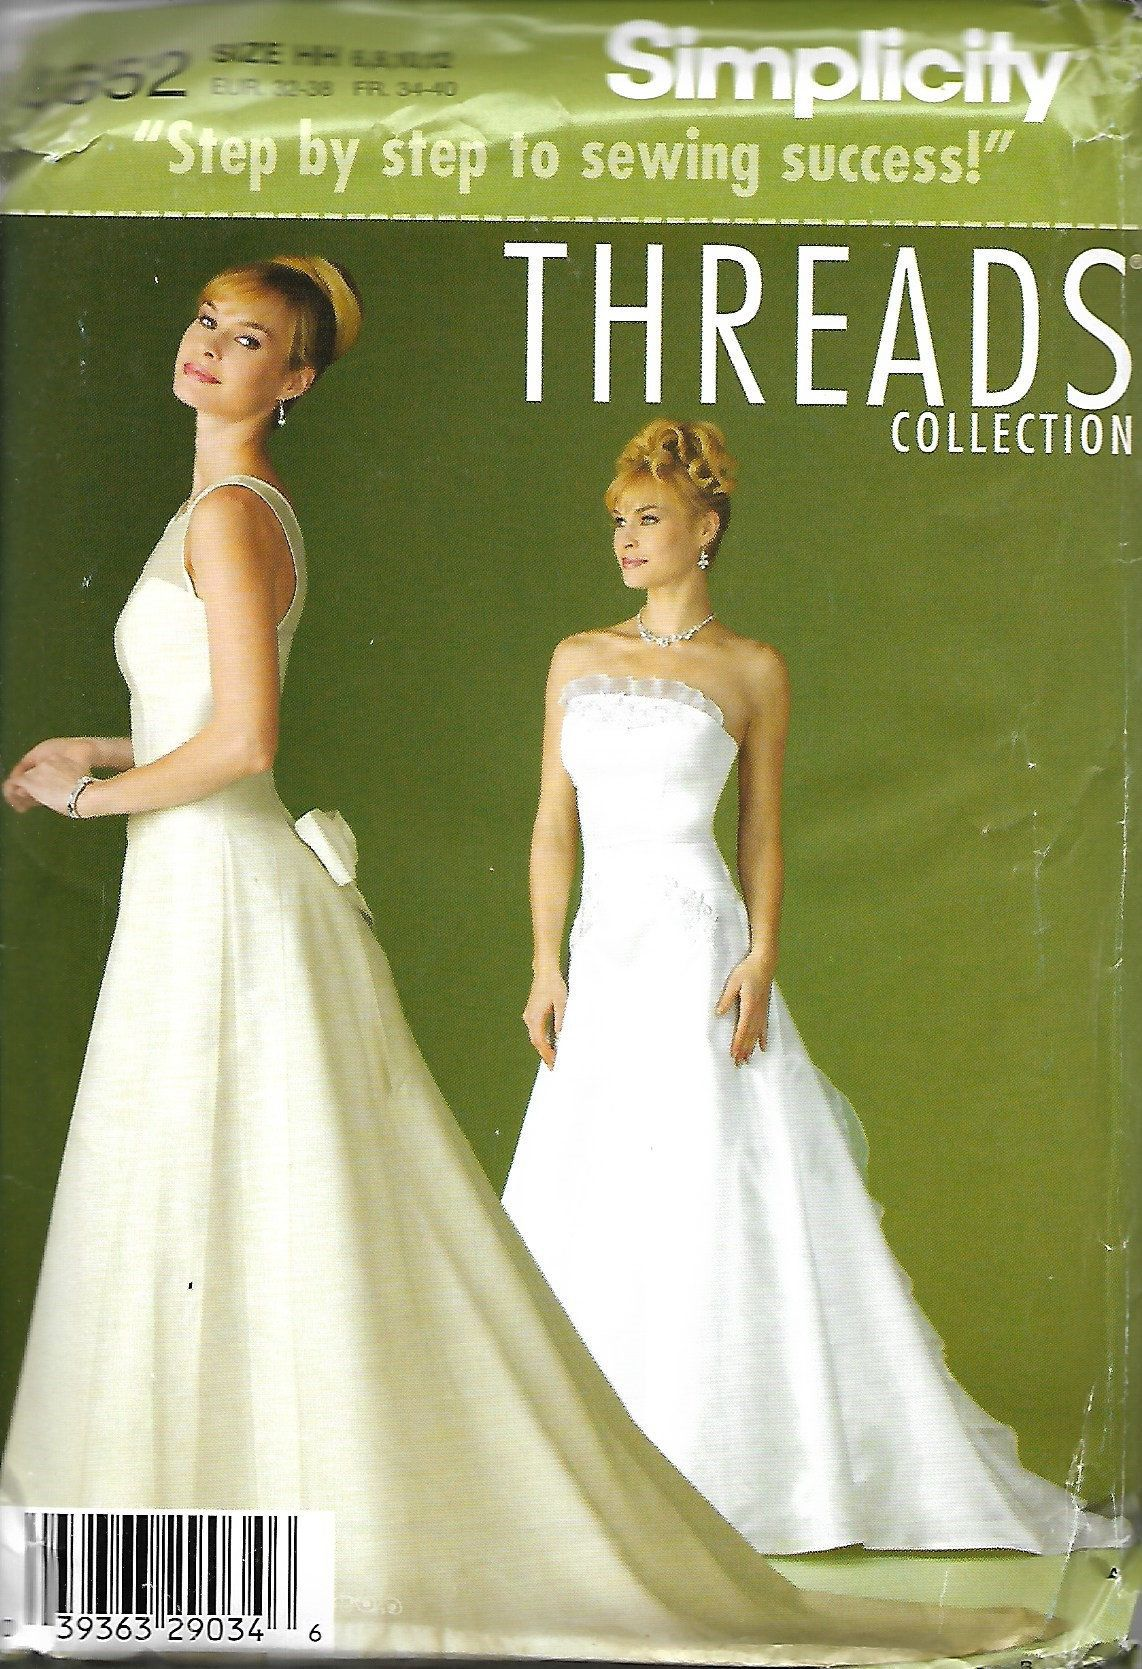 Simplicity 4652 Threads Collection Sewing Pattern, Misses Bridal ...